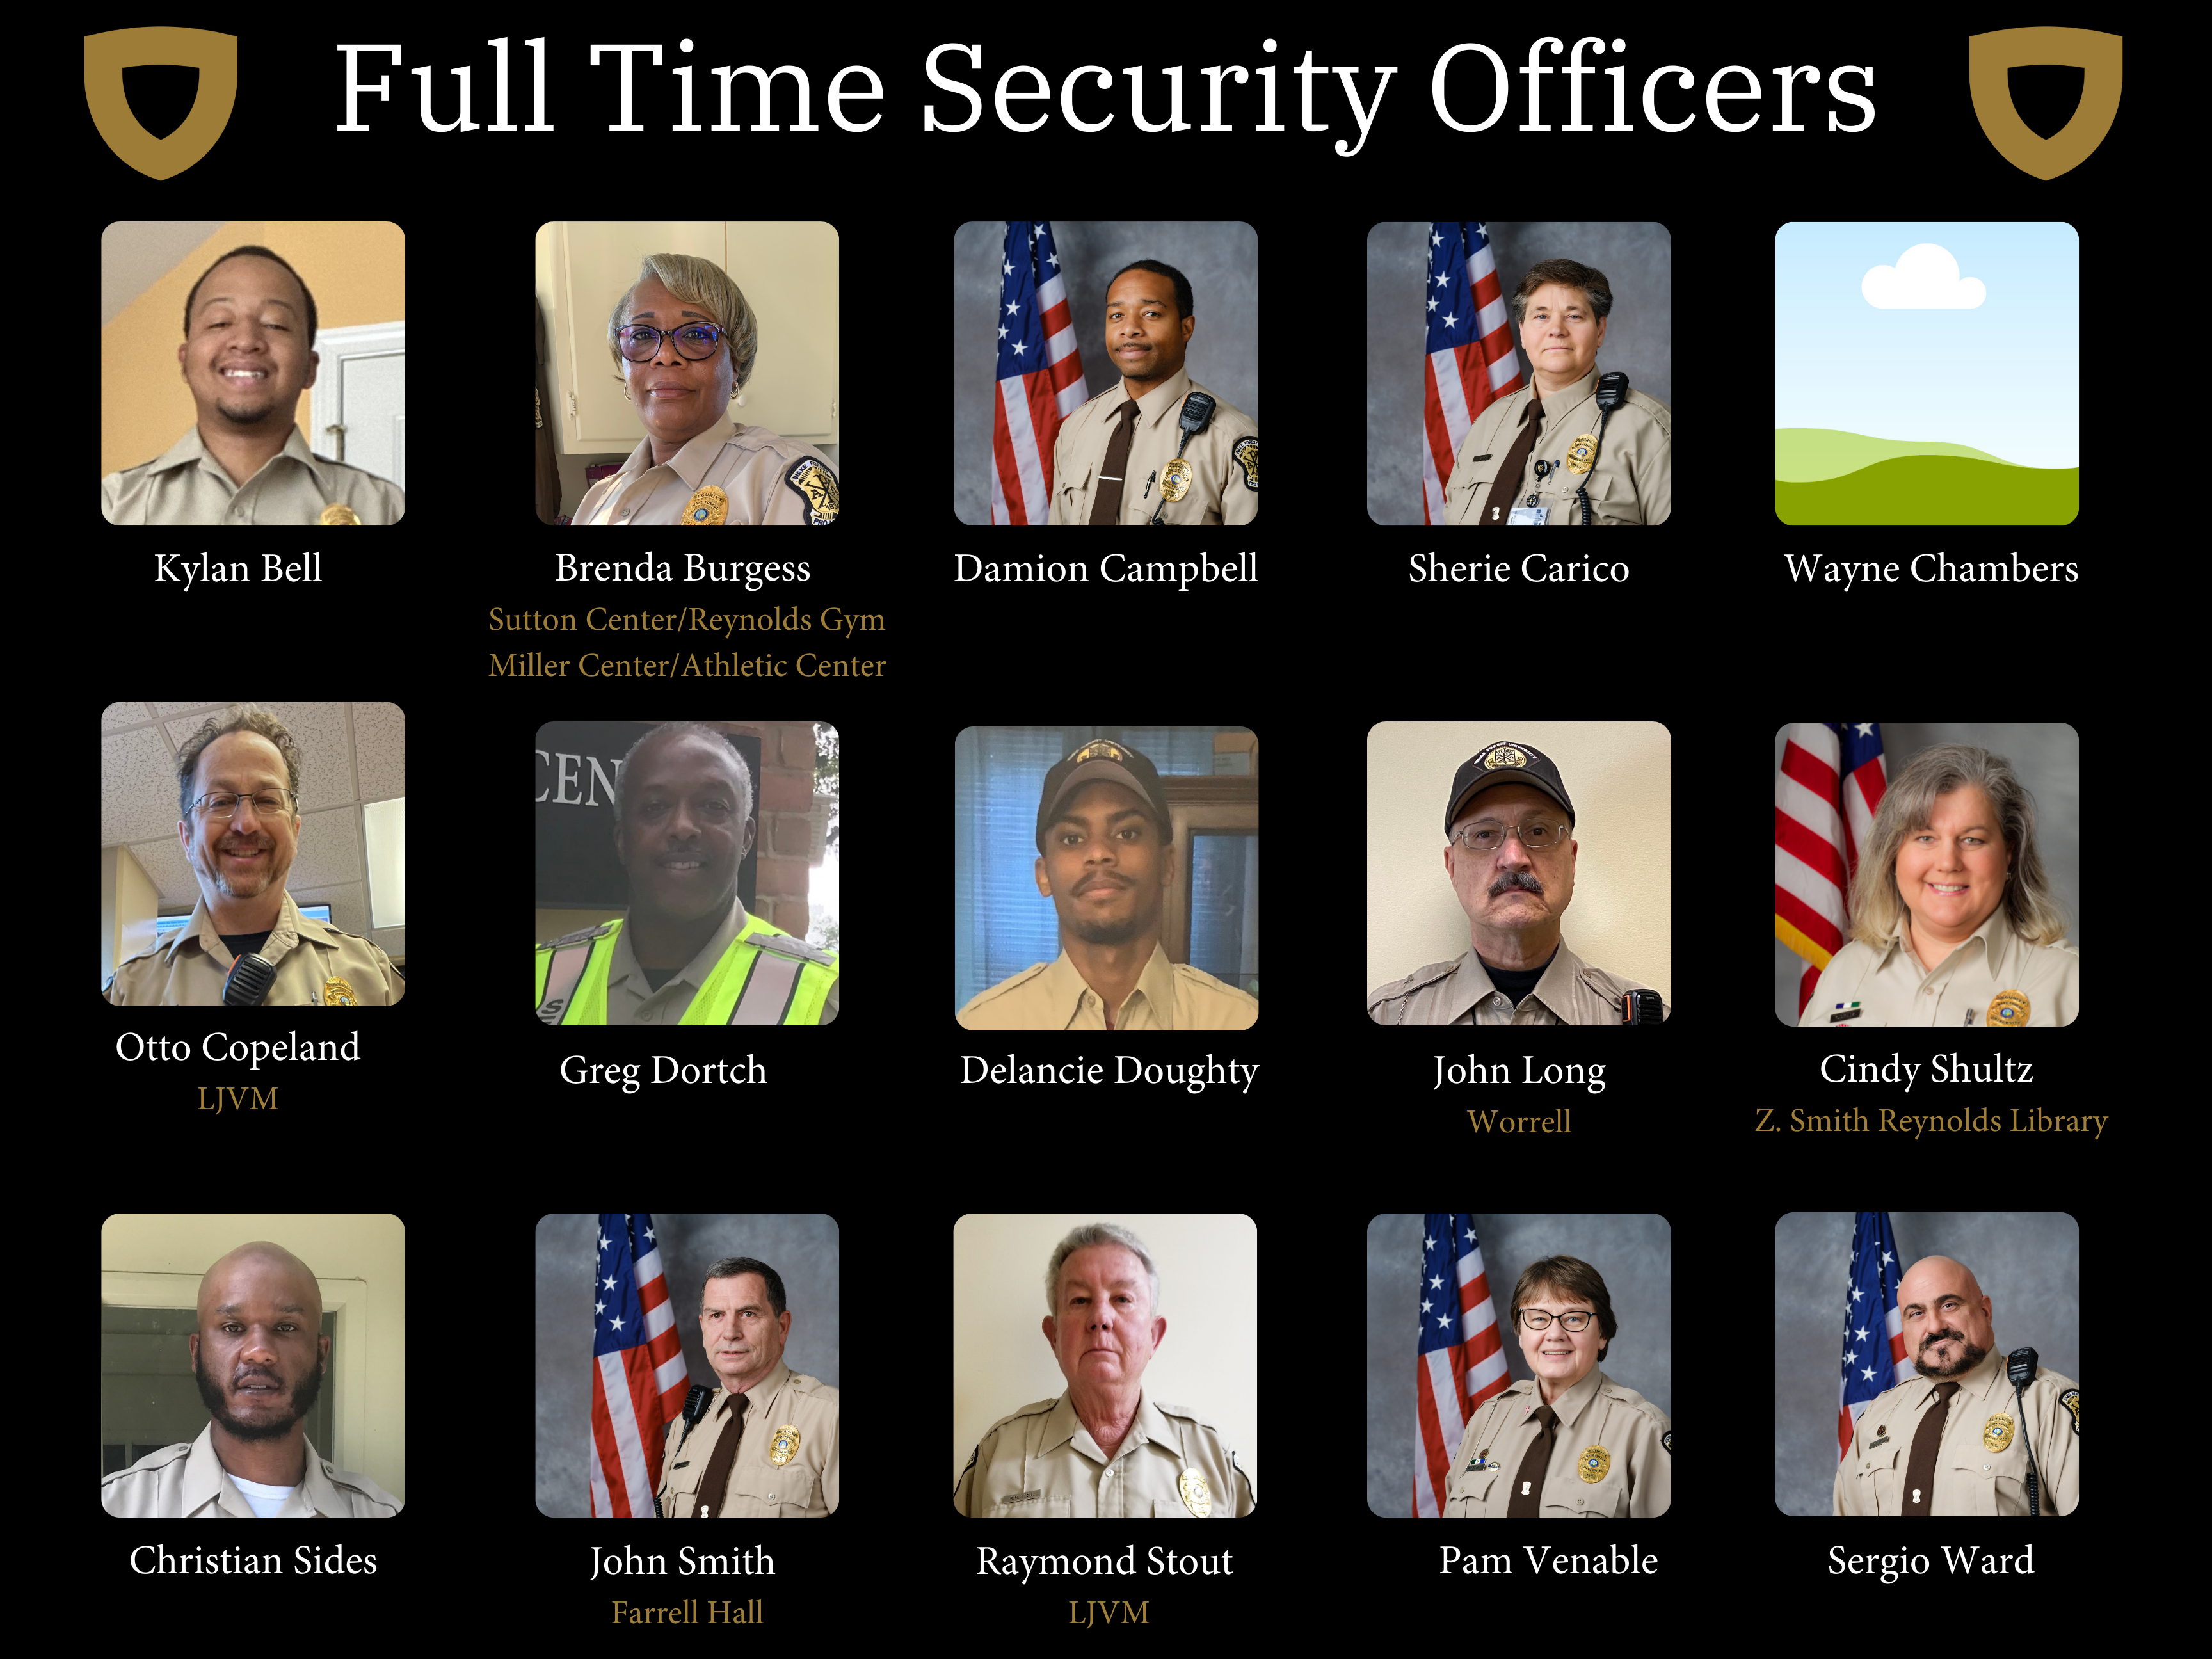 Full Time Security Officers